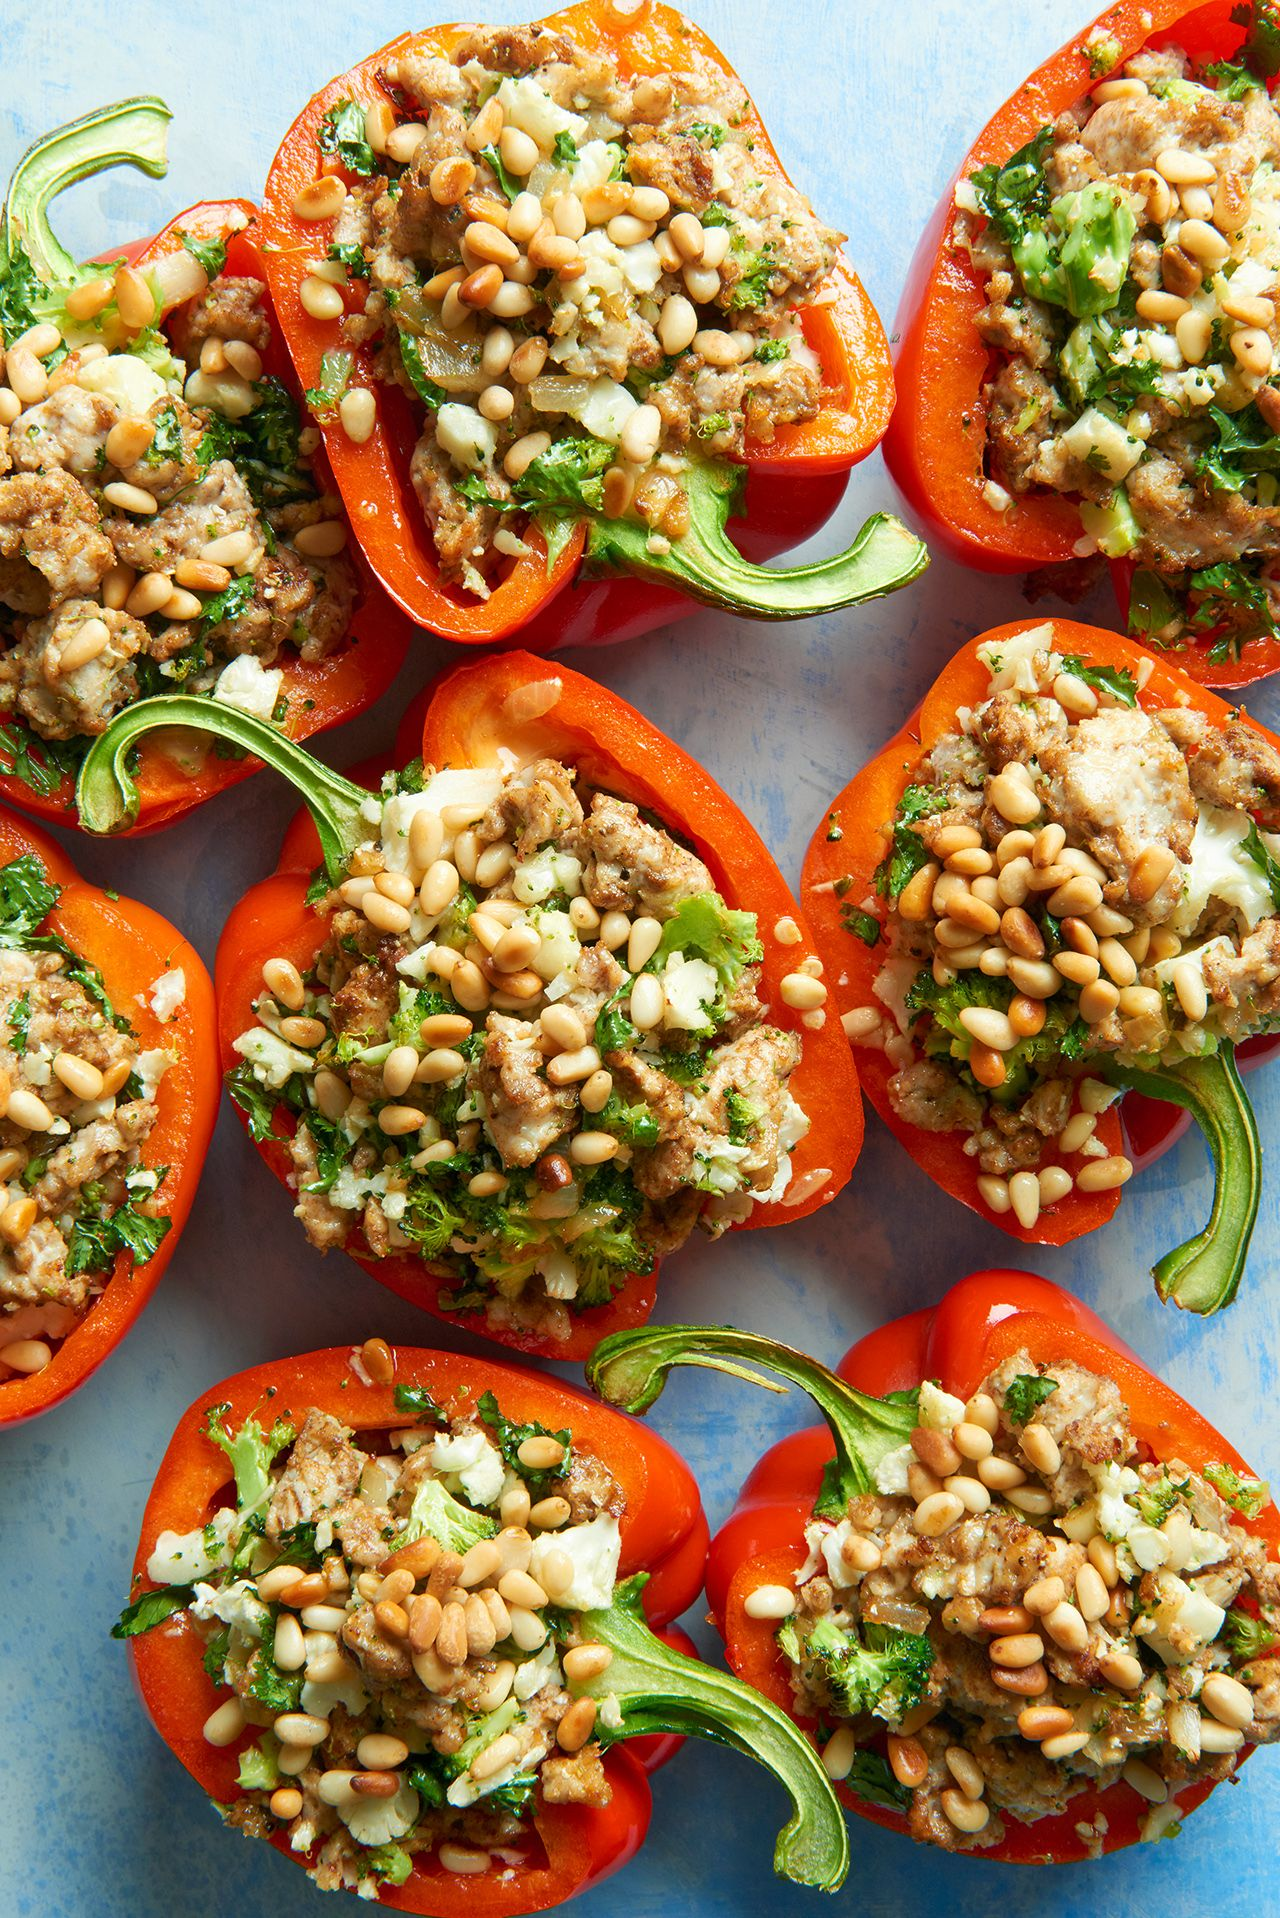 Paleo Broccoli Rice Stuffed Peppers Recipe Stuffed Peppers Light Dinner Recipes Healthy Dinner Recipes Chicken